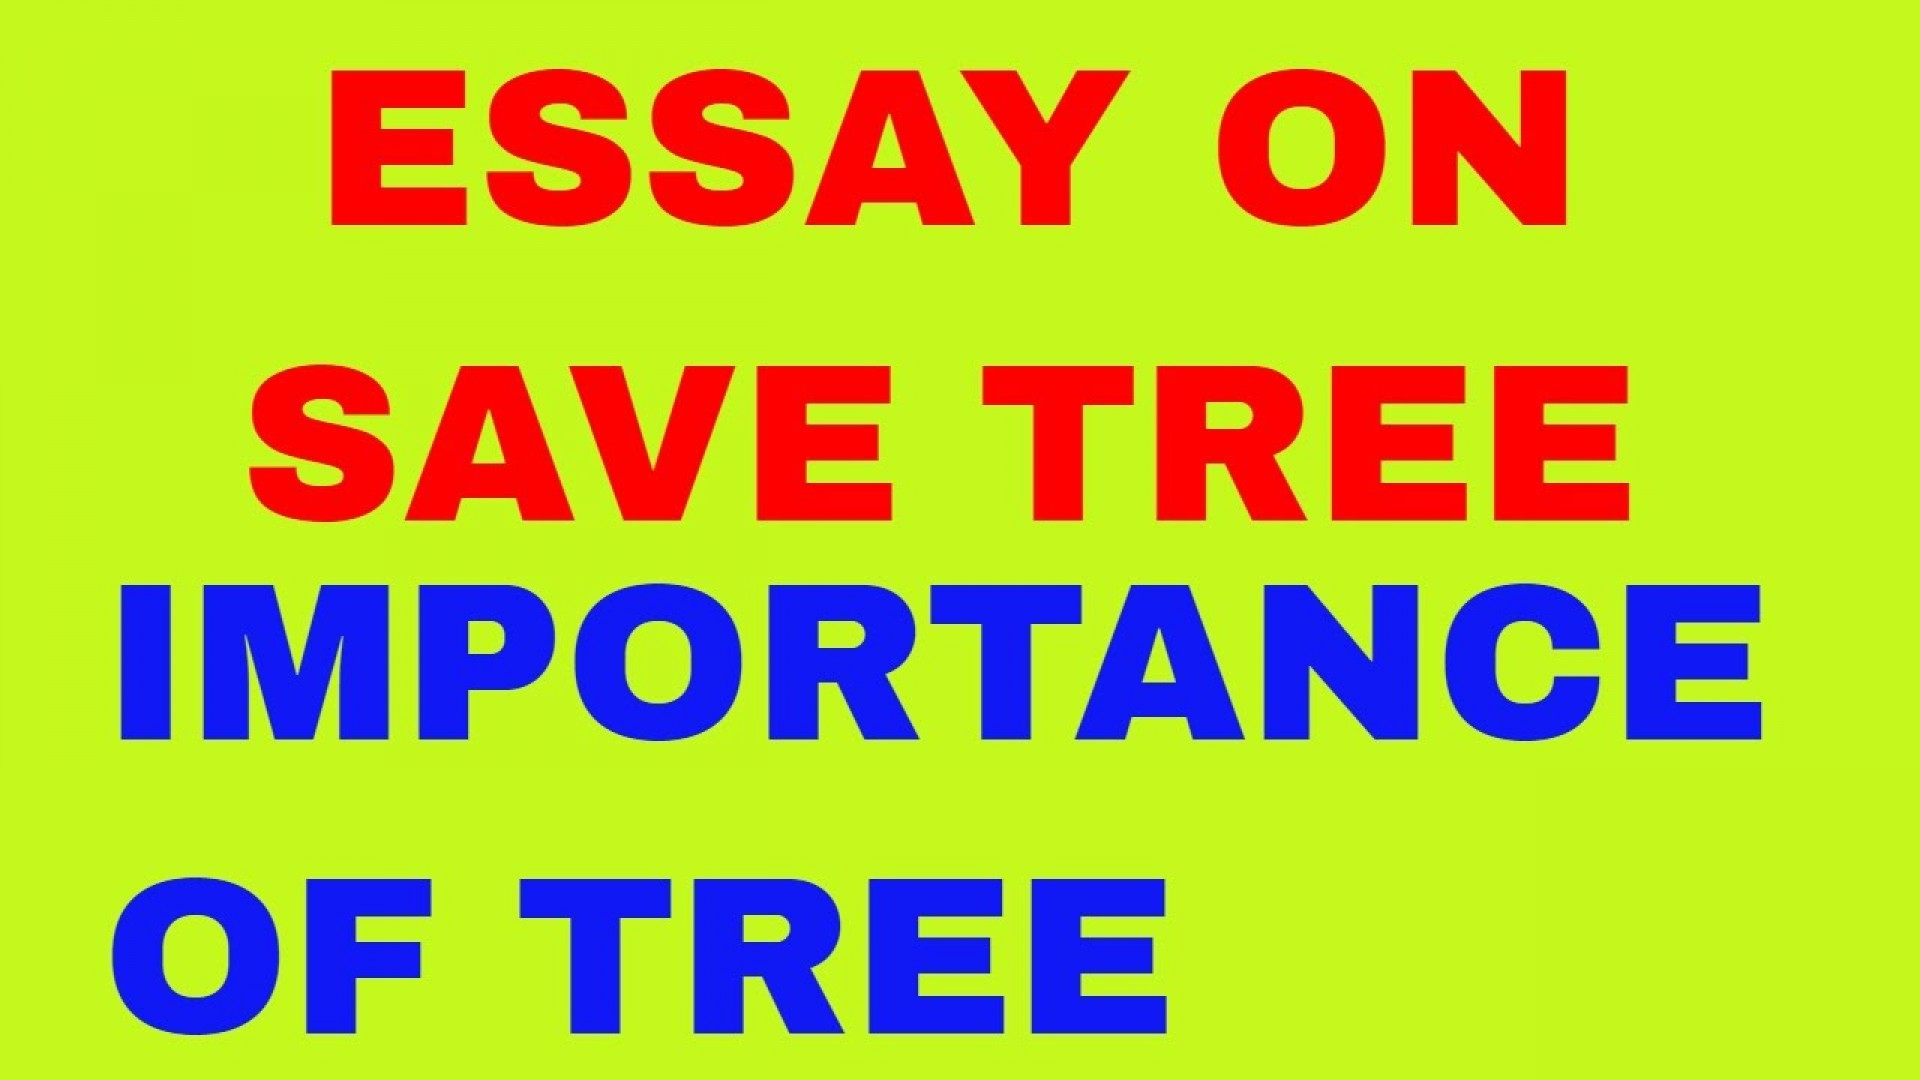 003 Maxresdefault How Can We Save Trees Essay Marvelous To In Hindi Telugu 1920